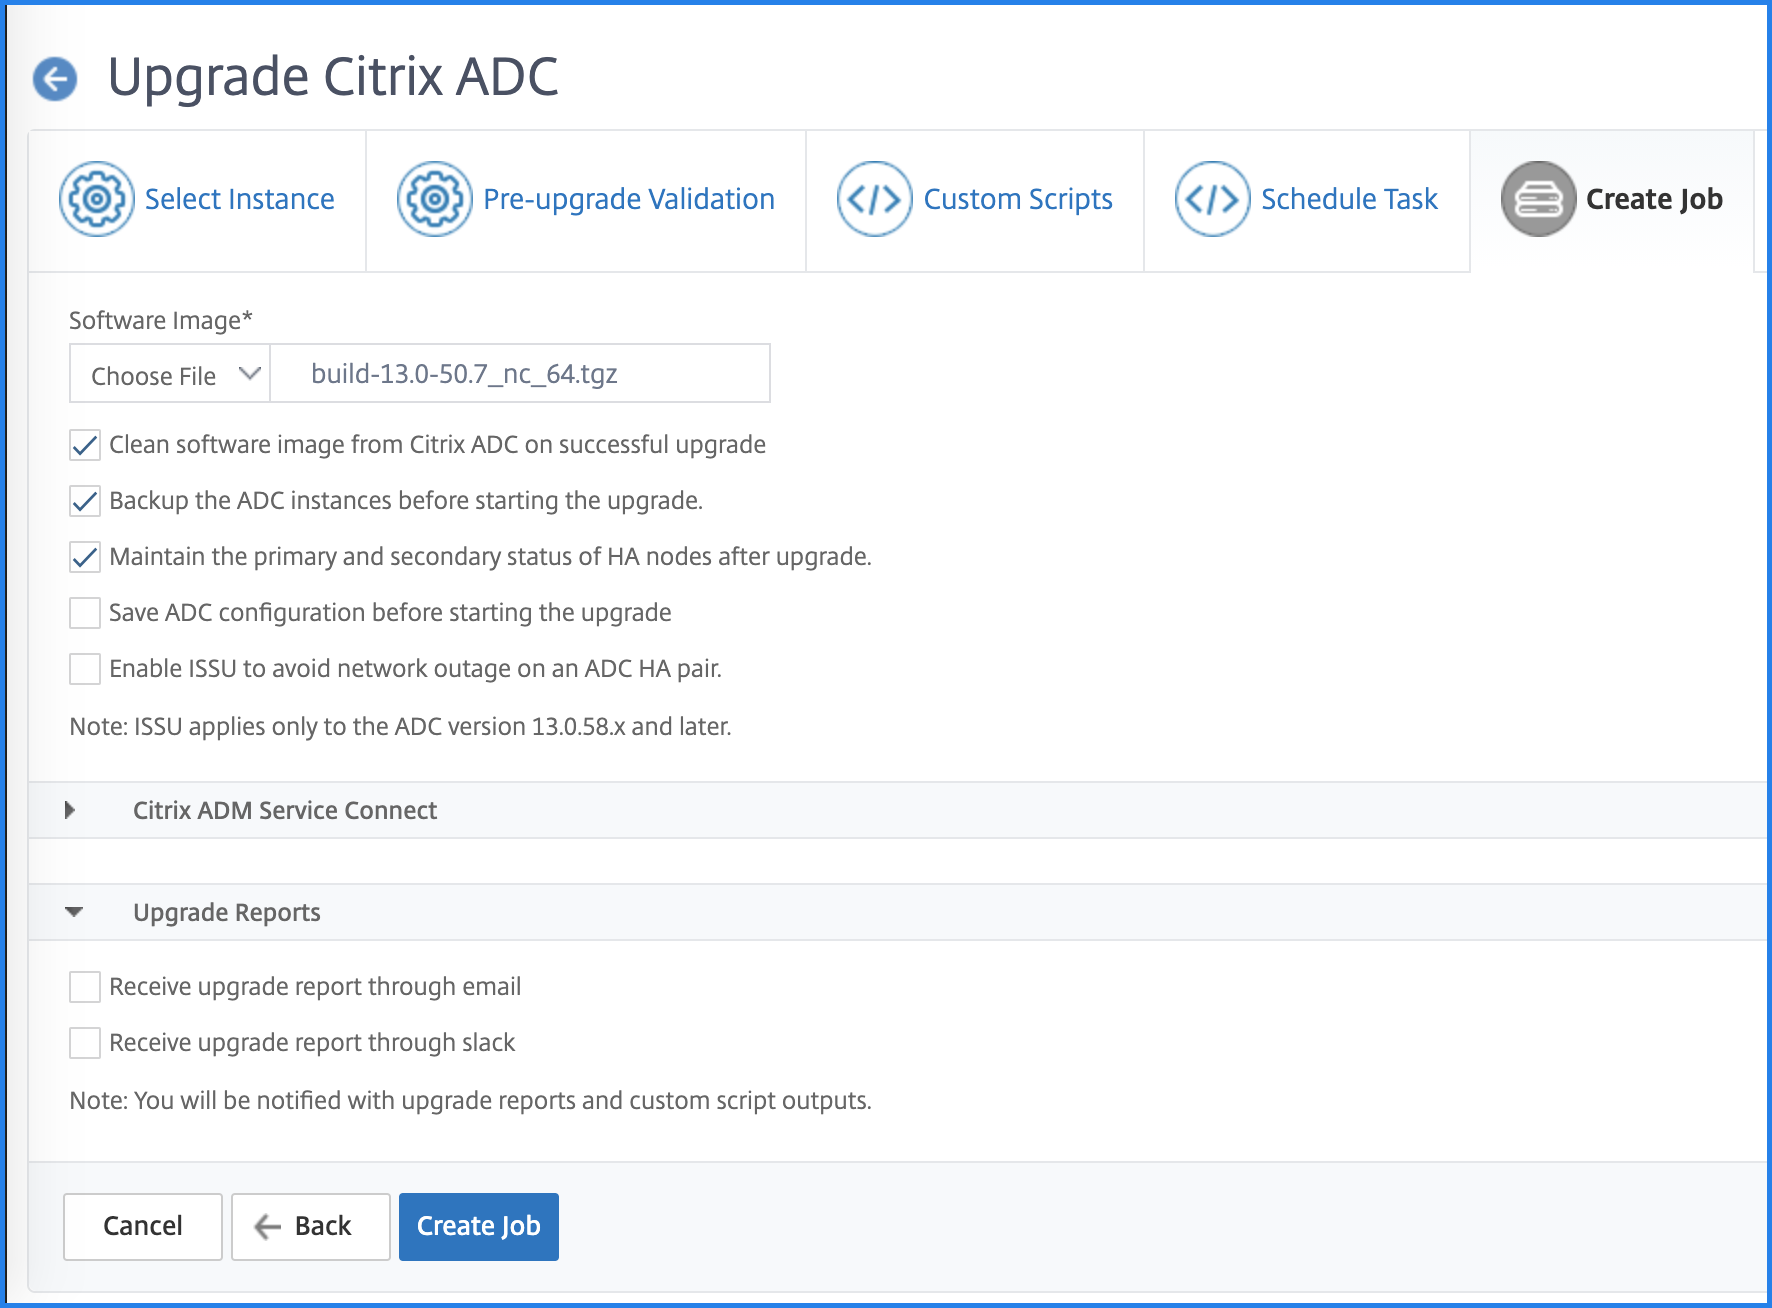 Create upgrade job and upload image to ADC